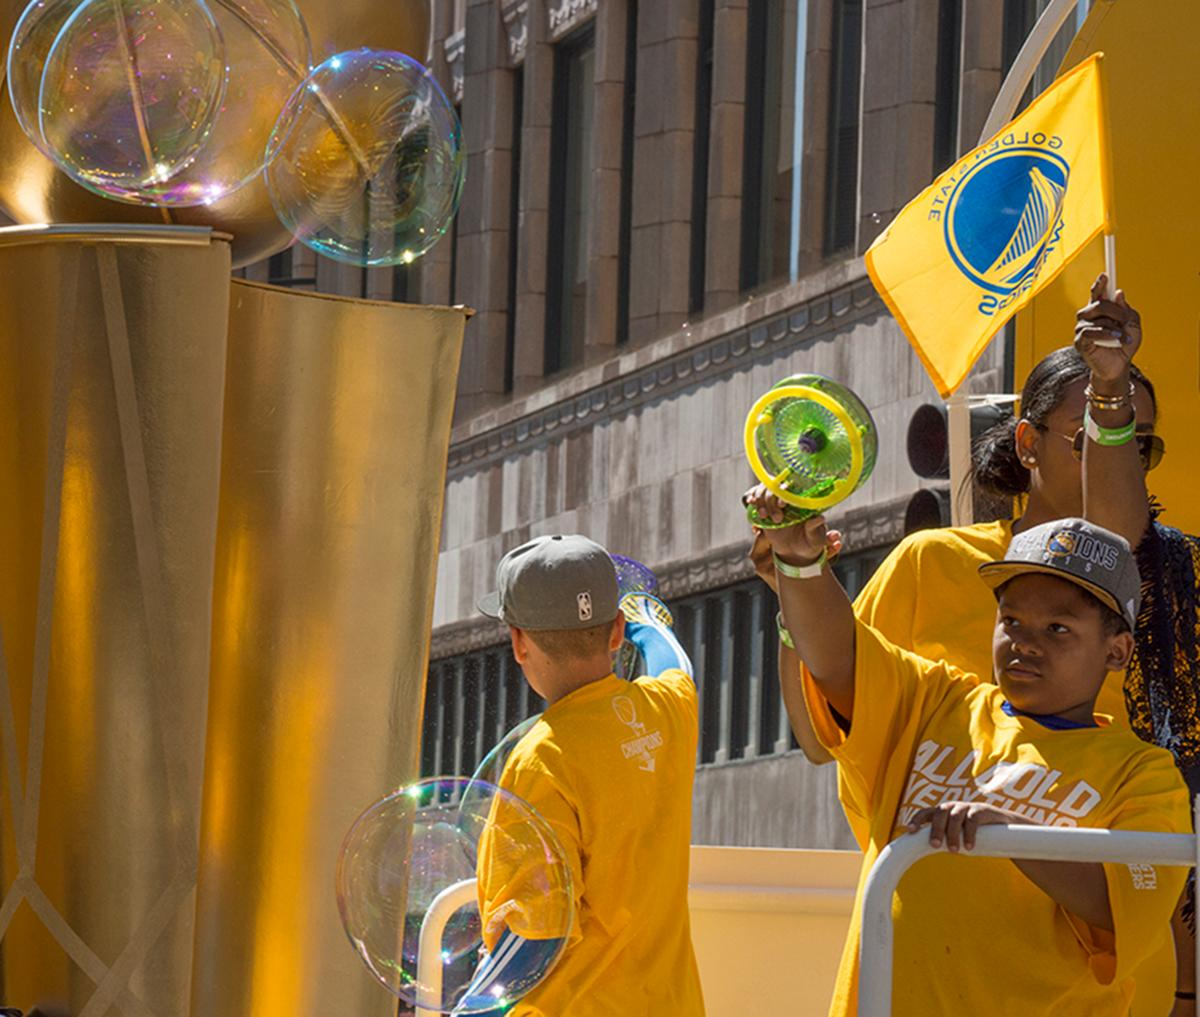 Oakland community members blow bubbles and wave to the crowd atop a float in the Golden State Warriors victory parade. Photo by Emily Gonzalez, Oregon News Lab.